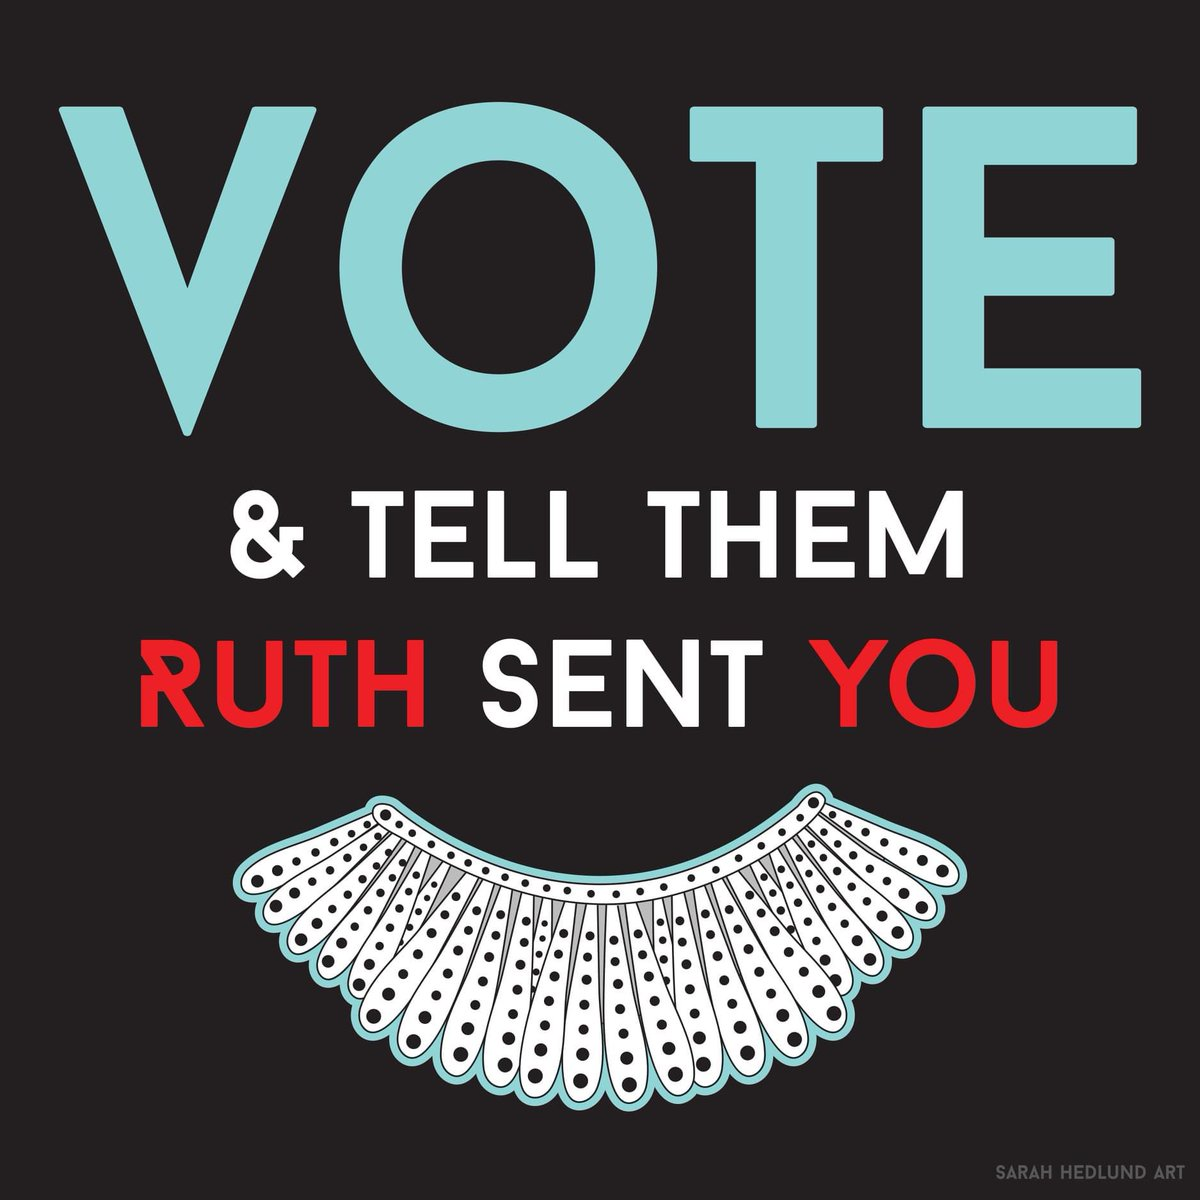 Love this. Message to our friends across the Atlantic. (Not sure of source, apologies!) #vote